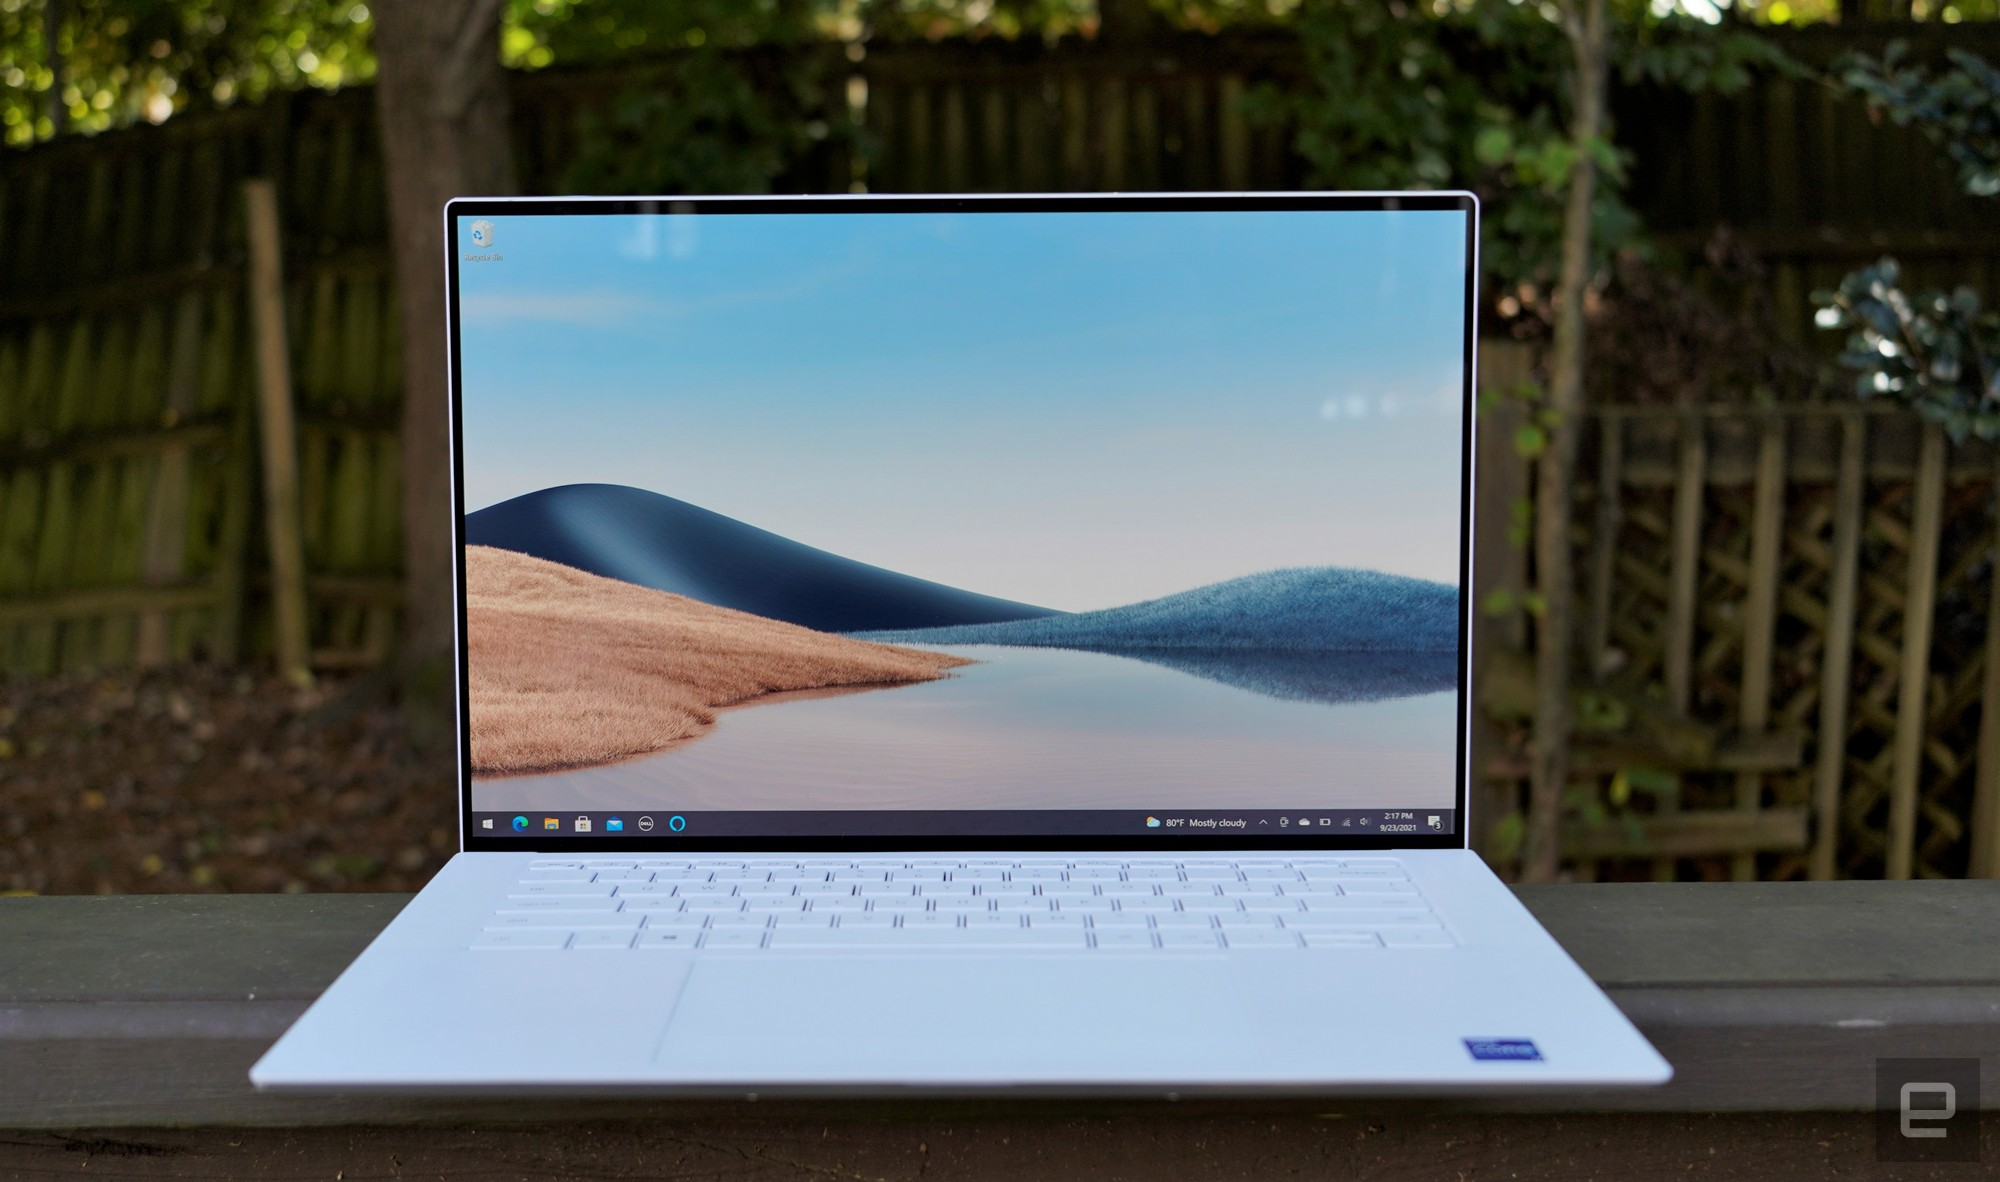 Dell XPS 15 OLED review: A practically perfect 15-inch laptop | Engadget